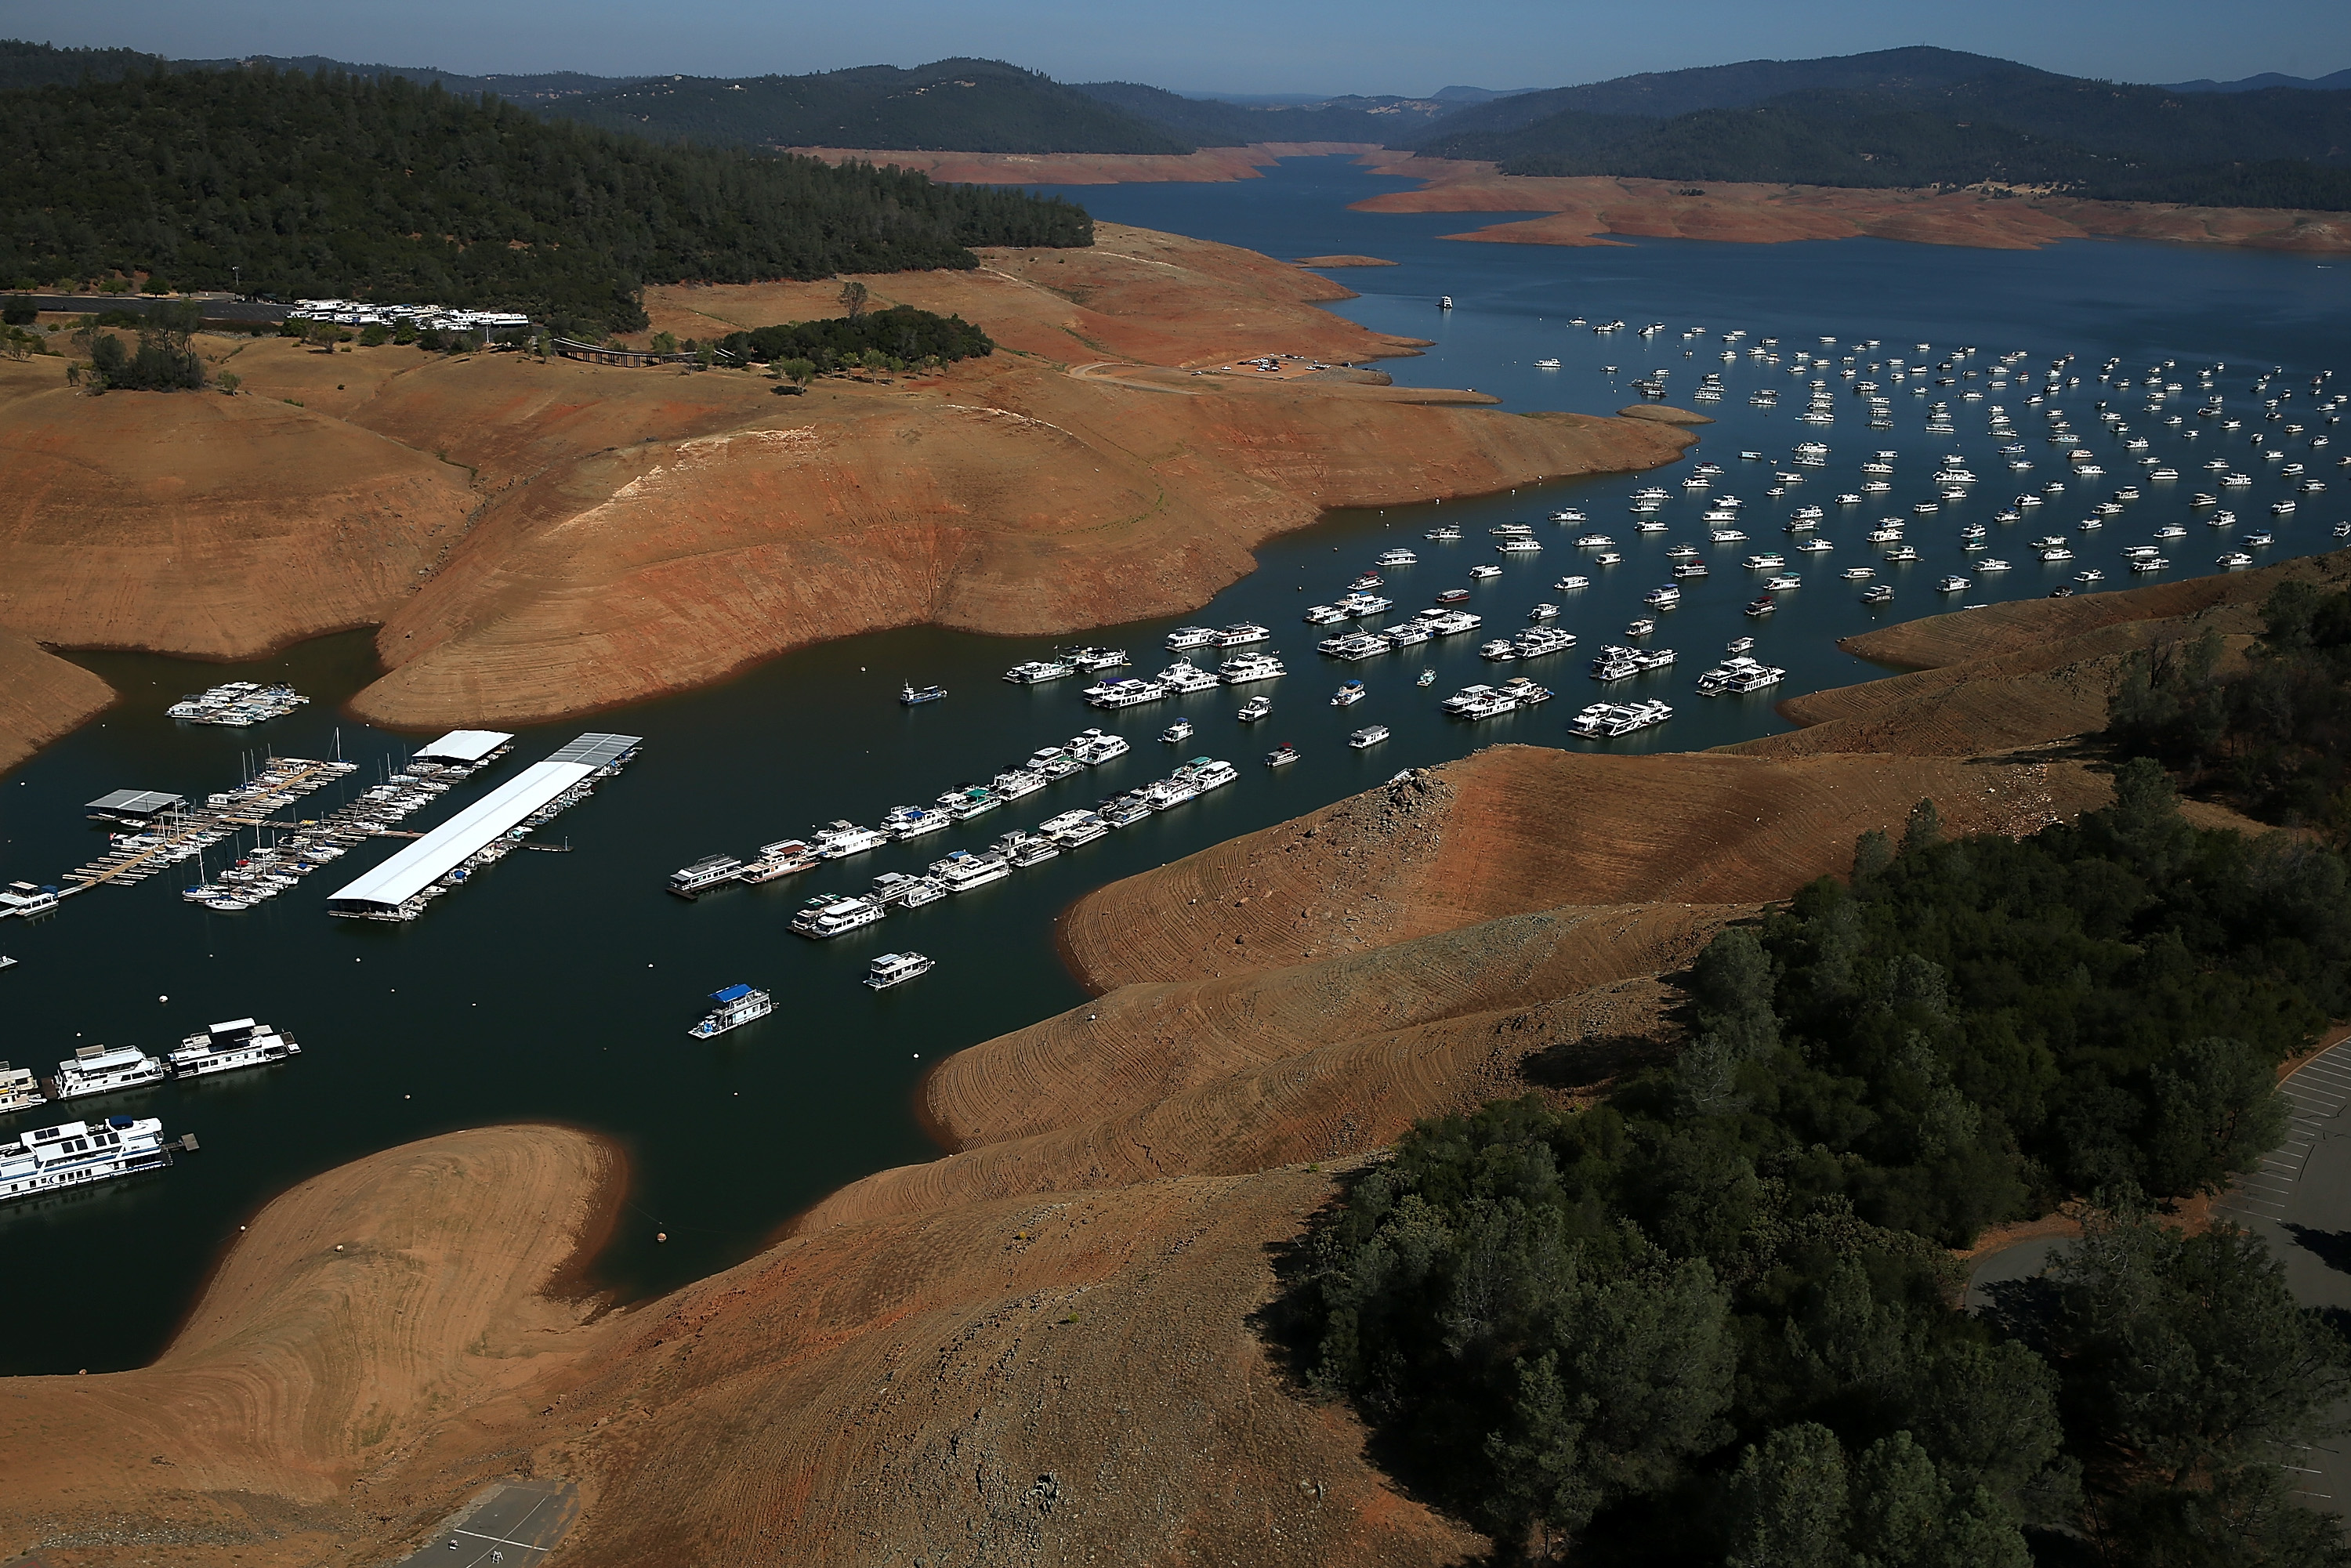 Stunning before and after images of California's drought - Vox